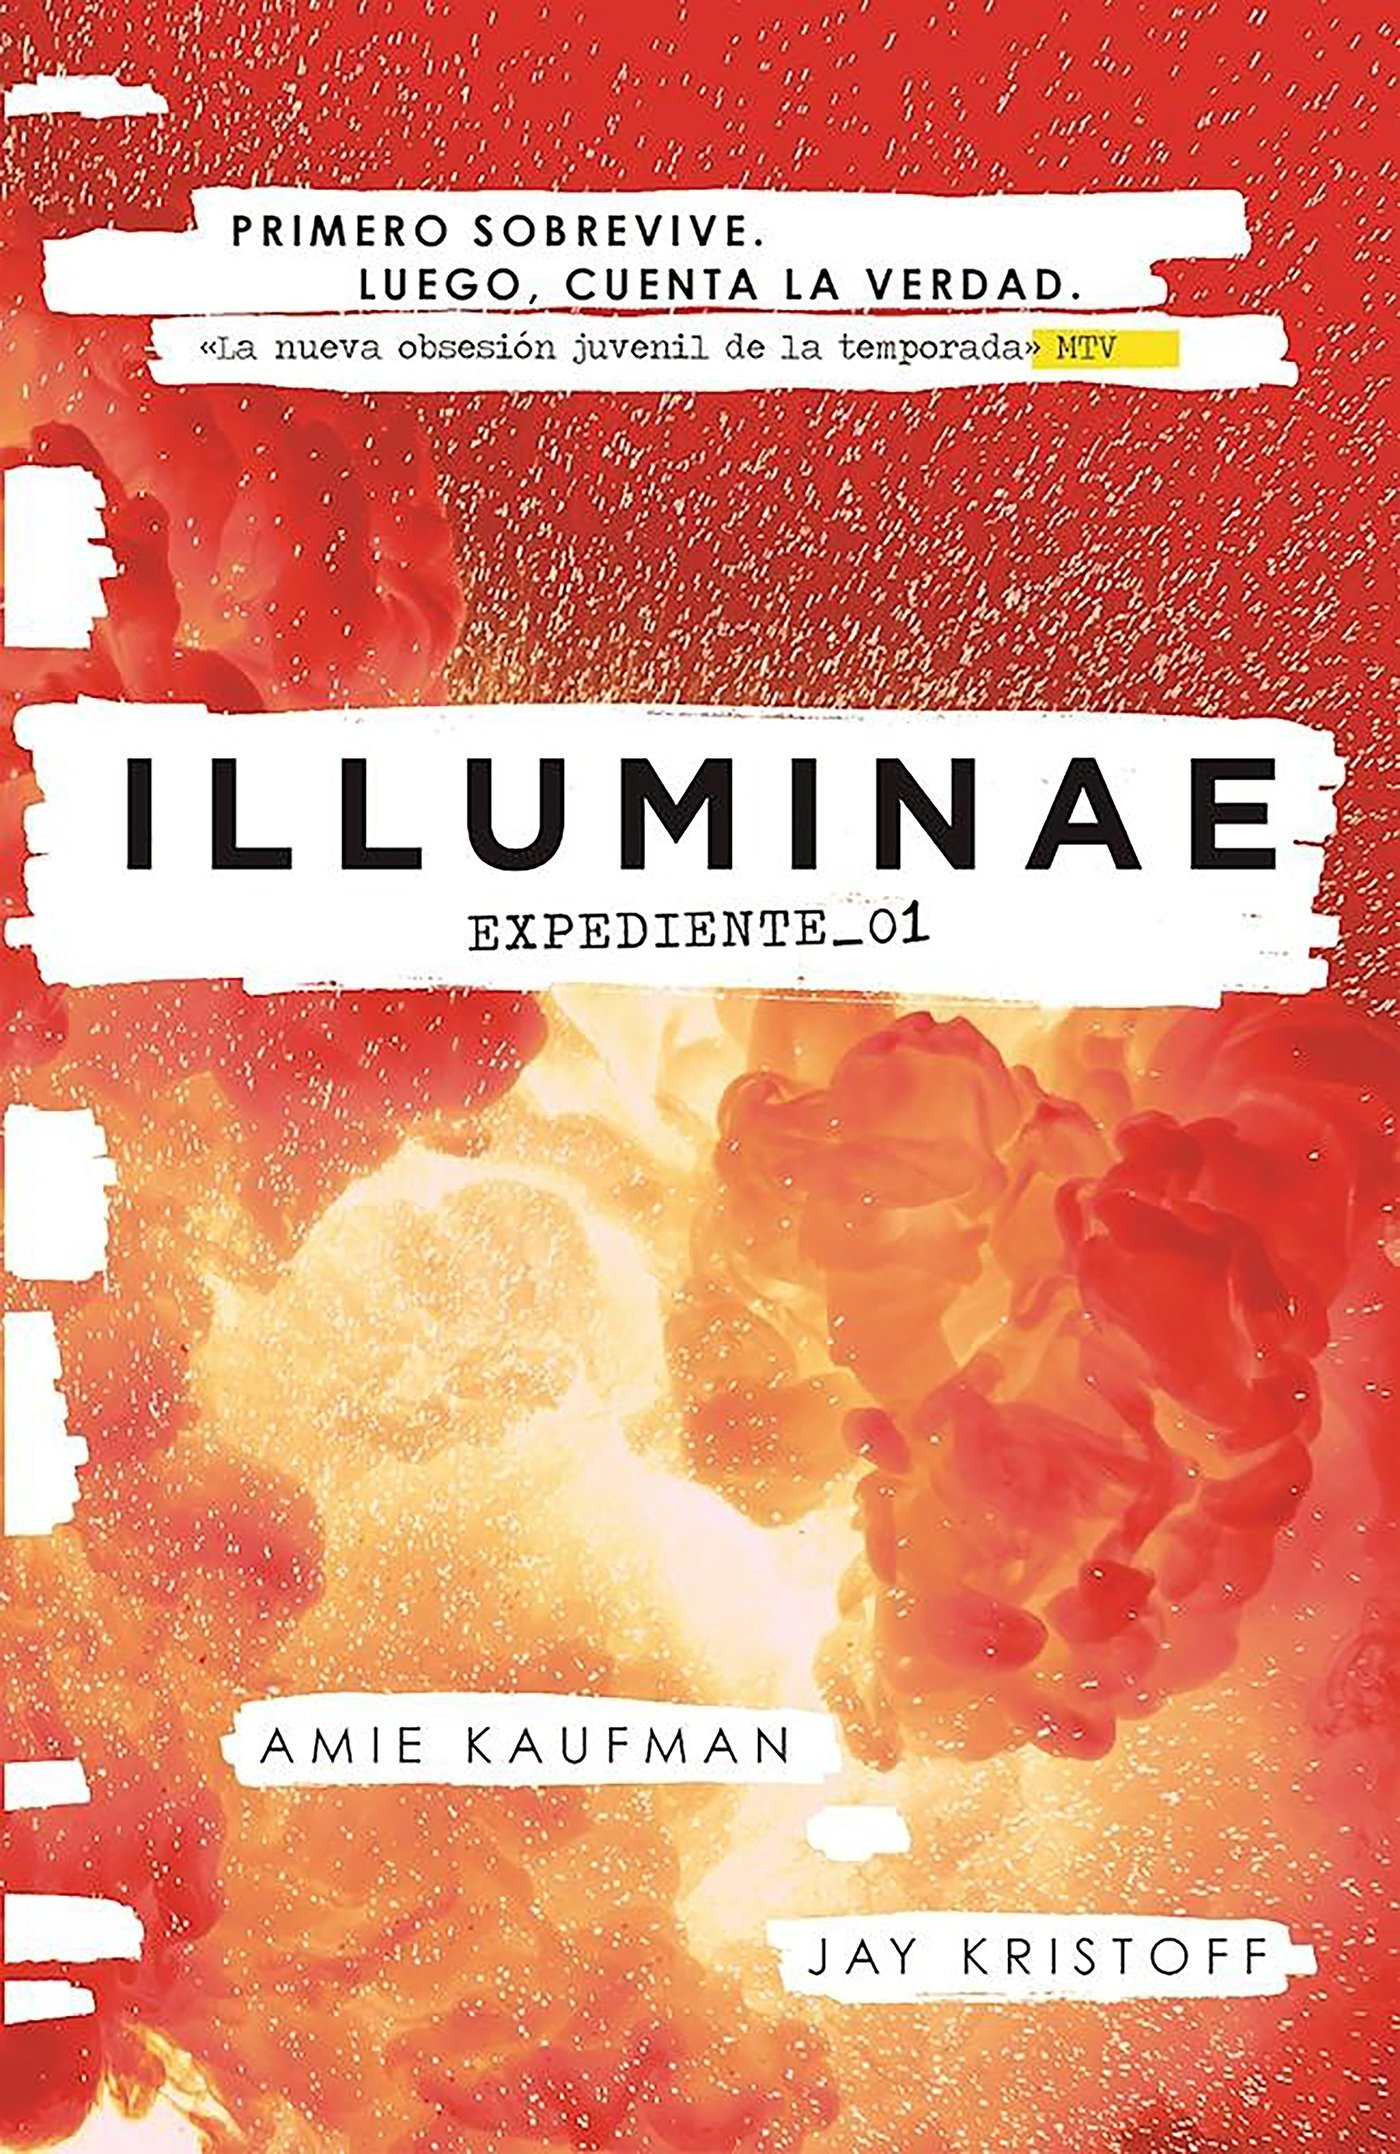 Illuminae. Expediente_01 (Spanish Edition): Amie Kaufman ...